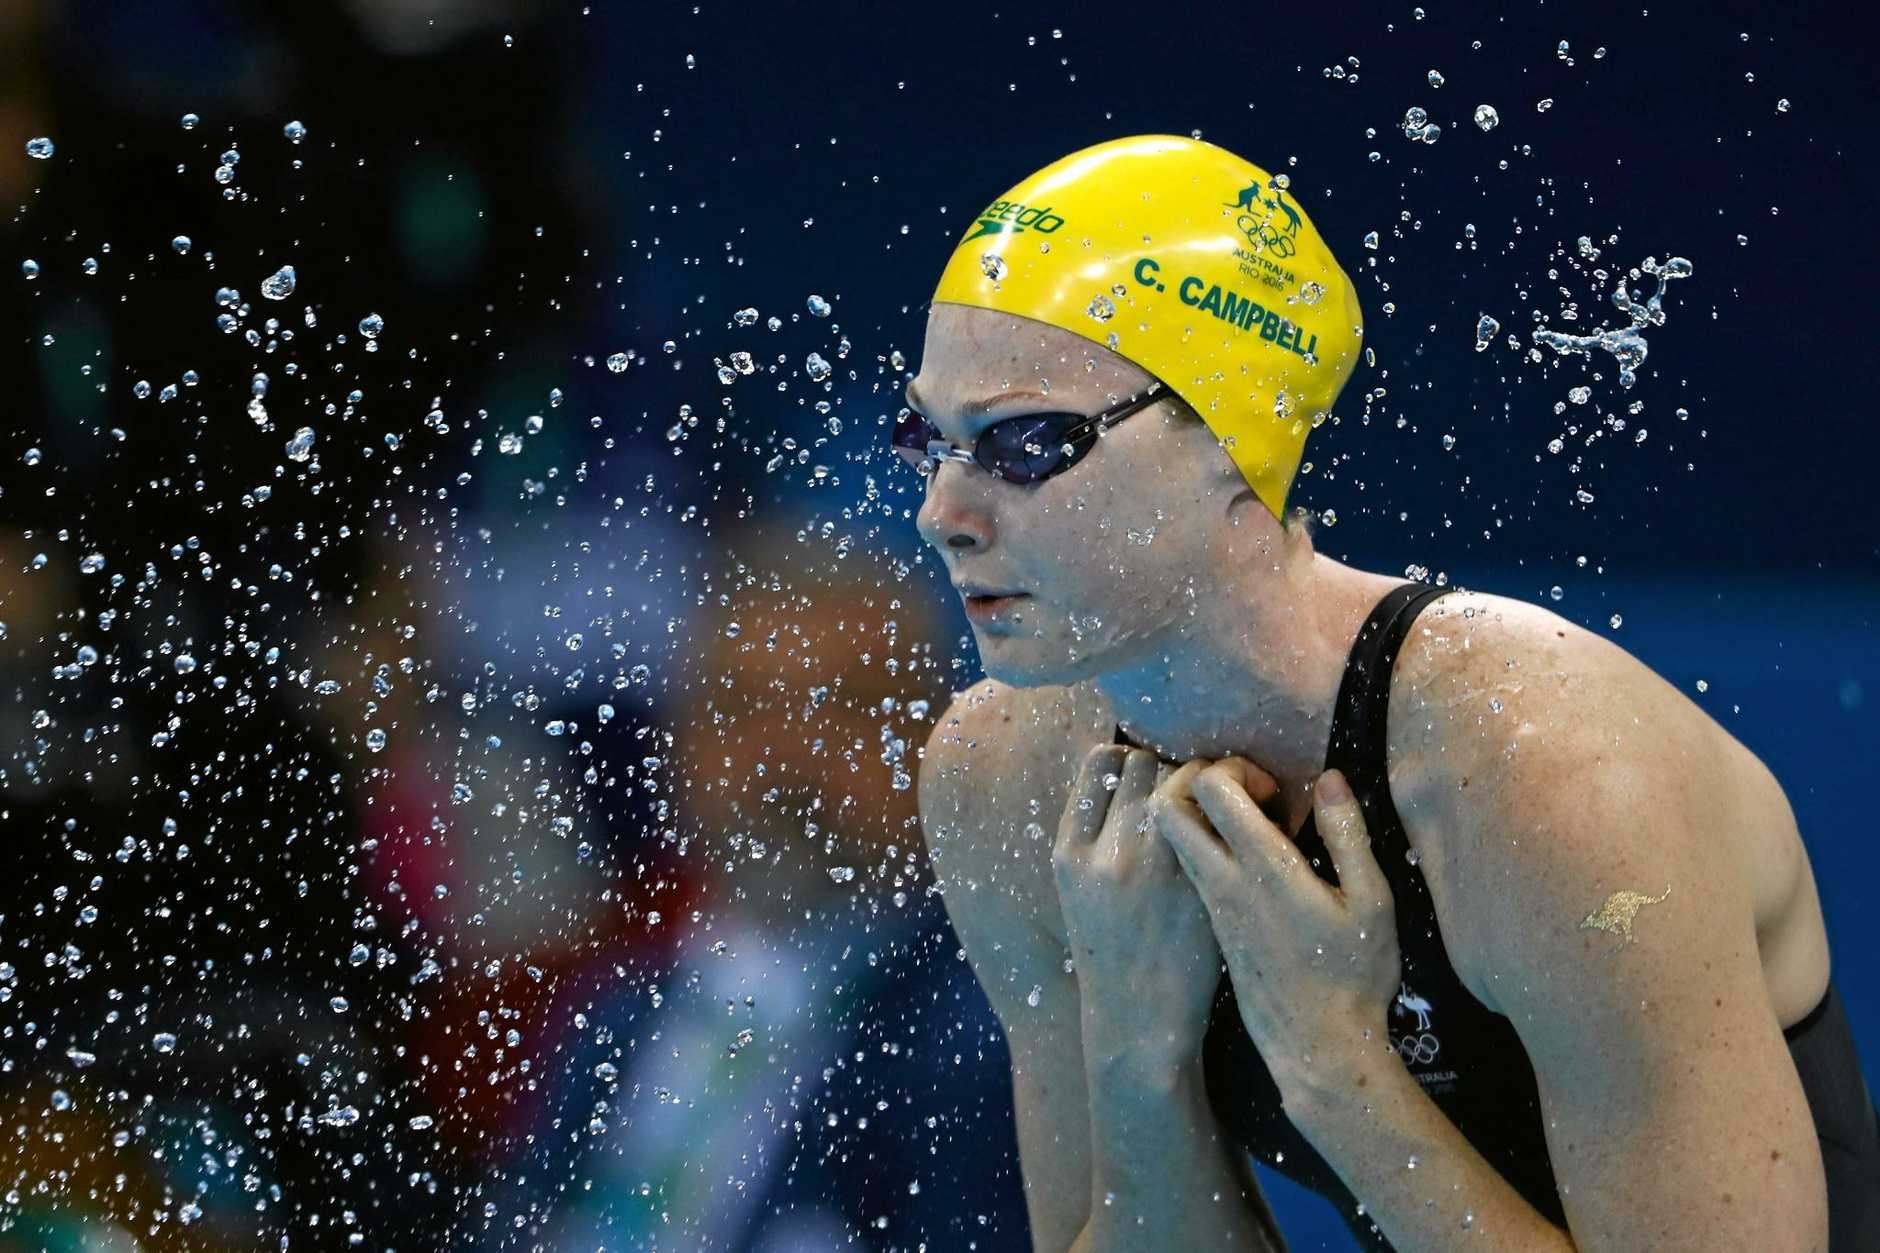 RIO DE JANEIRO, BRAZIL - AUGUST 13:  Cate Campbell of Australia prepares ahead of the Women's 50m Freestyle Final on Day 8 of the Rio 2016 Olympic Games at the Olympic Aquatics Stadium on August 13, 2016 in Rio de Janeiro, Brazil.  (Photo by Clive Rose/Getty Images)